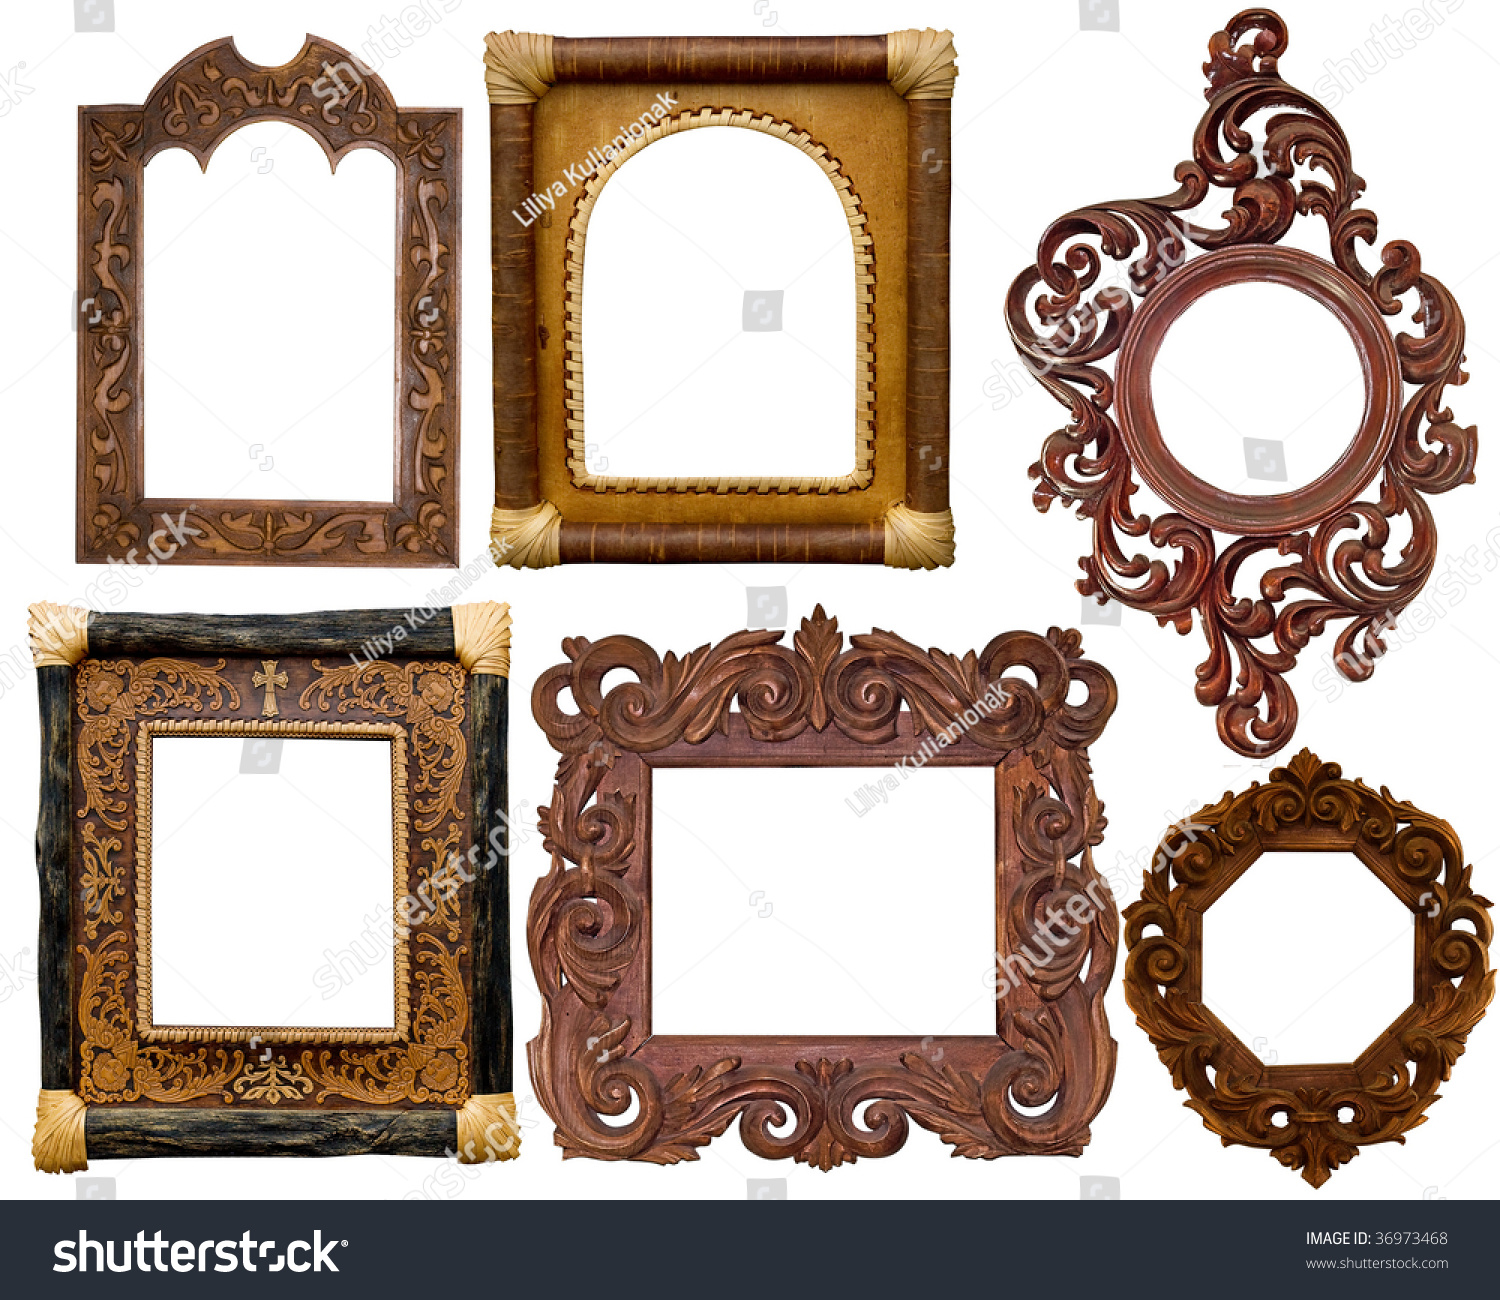 collection of carved decorative frames - Decorative Picture Frames